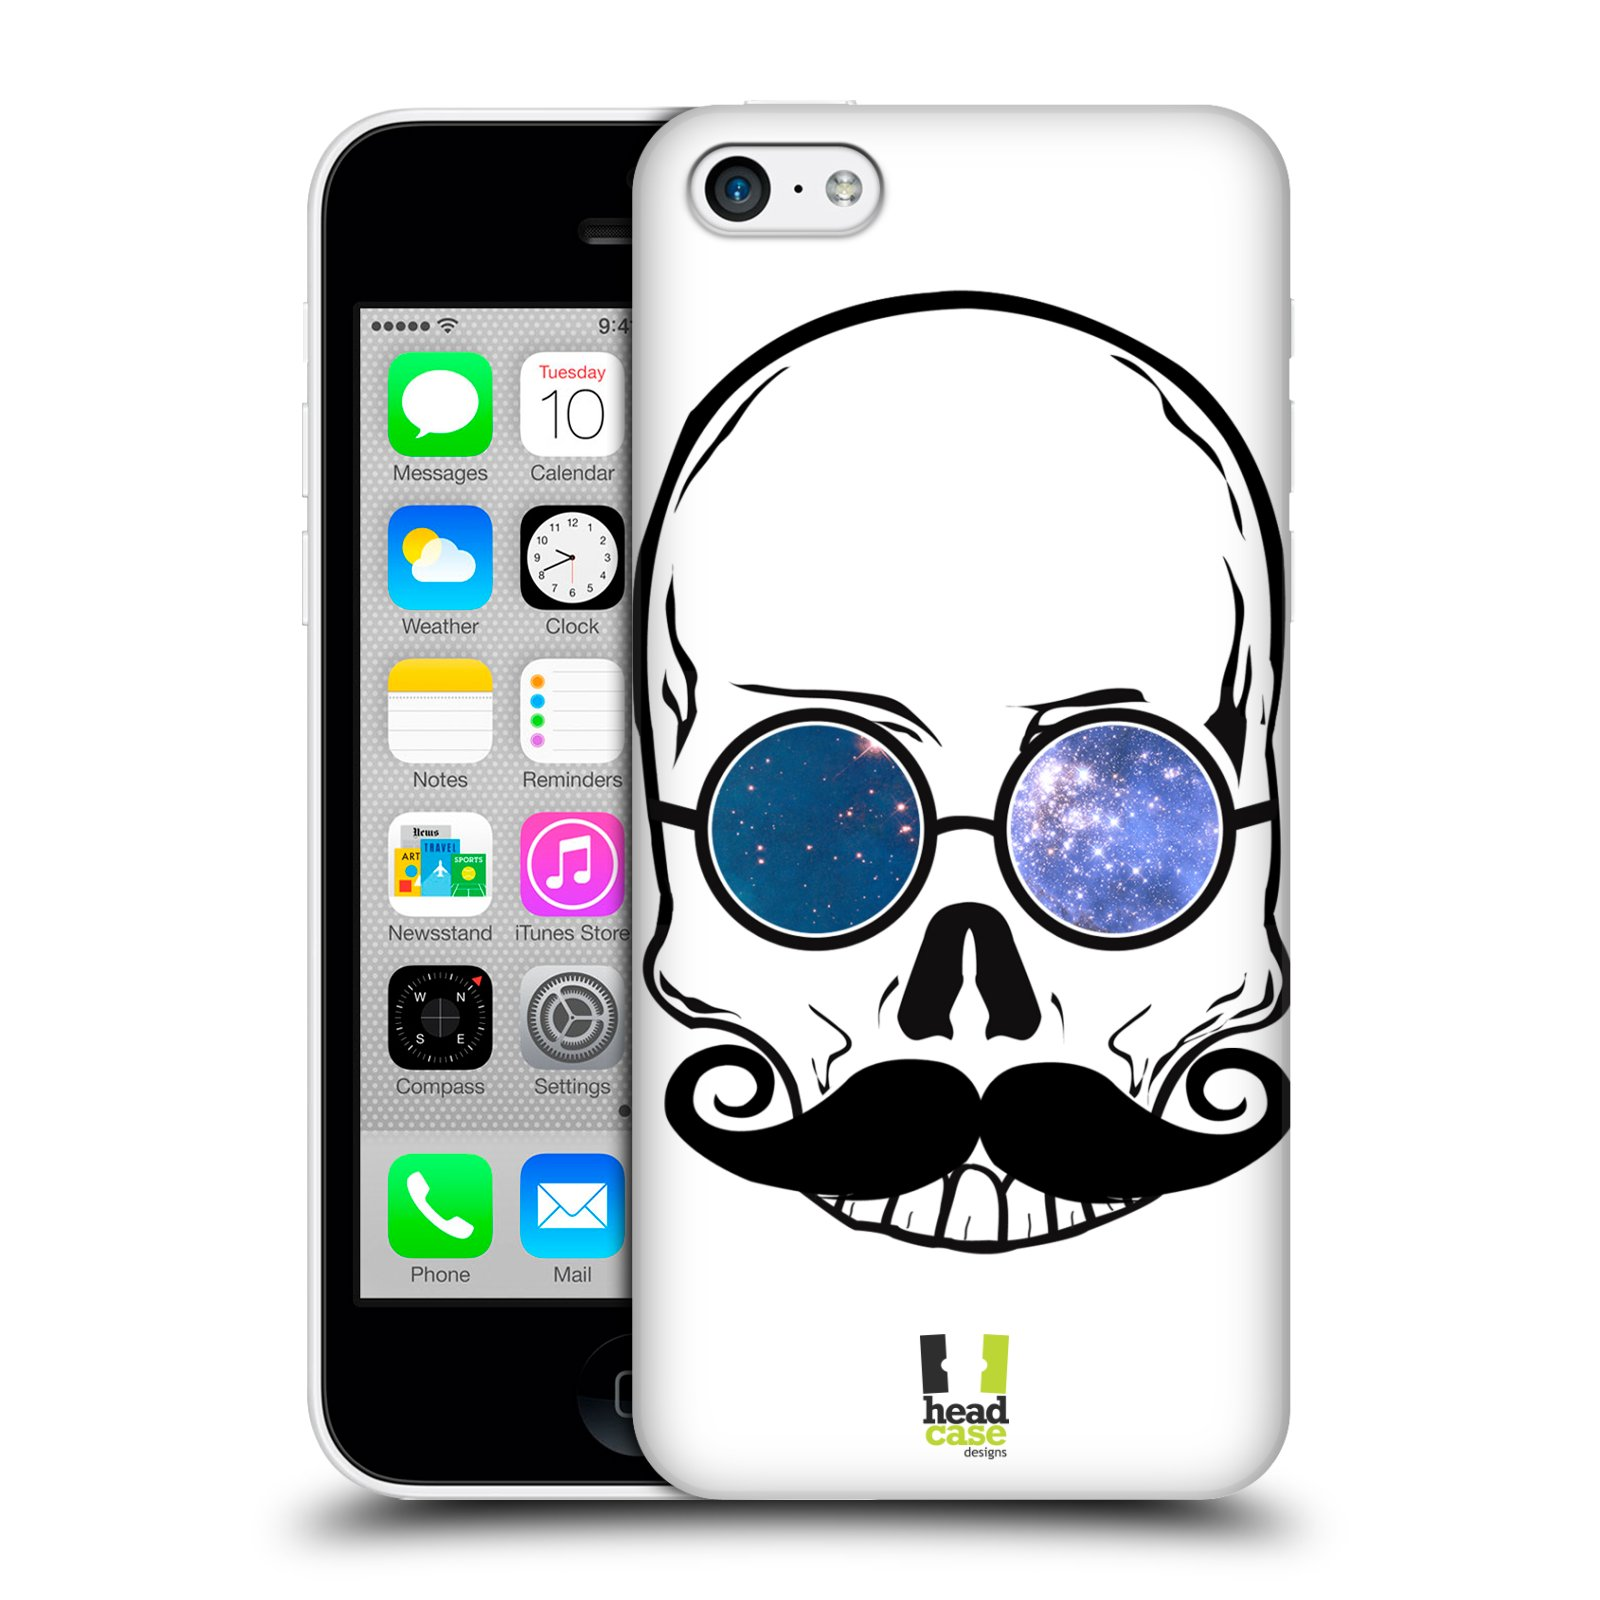 HEAD-CASE-DESIGNS-HIPSTERISM-PROTECTIVE-HARD-BACK-CASE-COVER-FOR-APPLE-iPHONE-5C